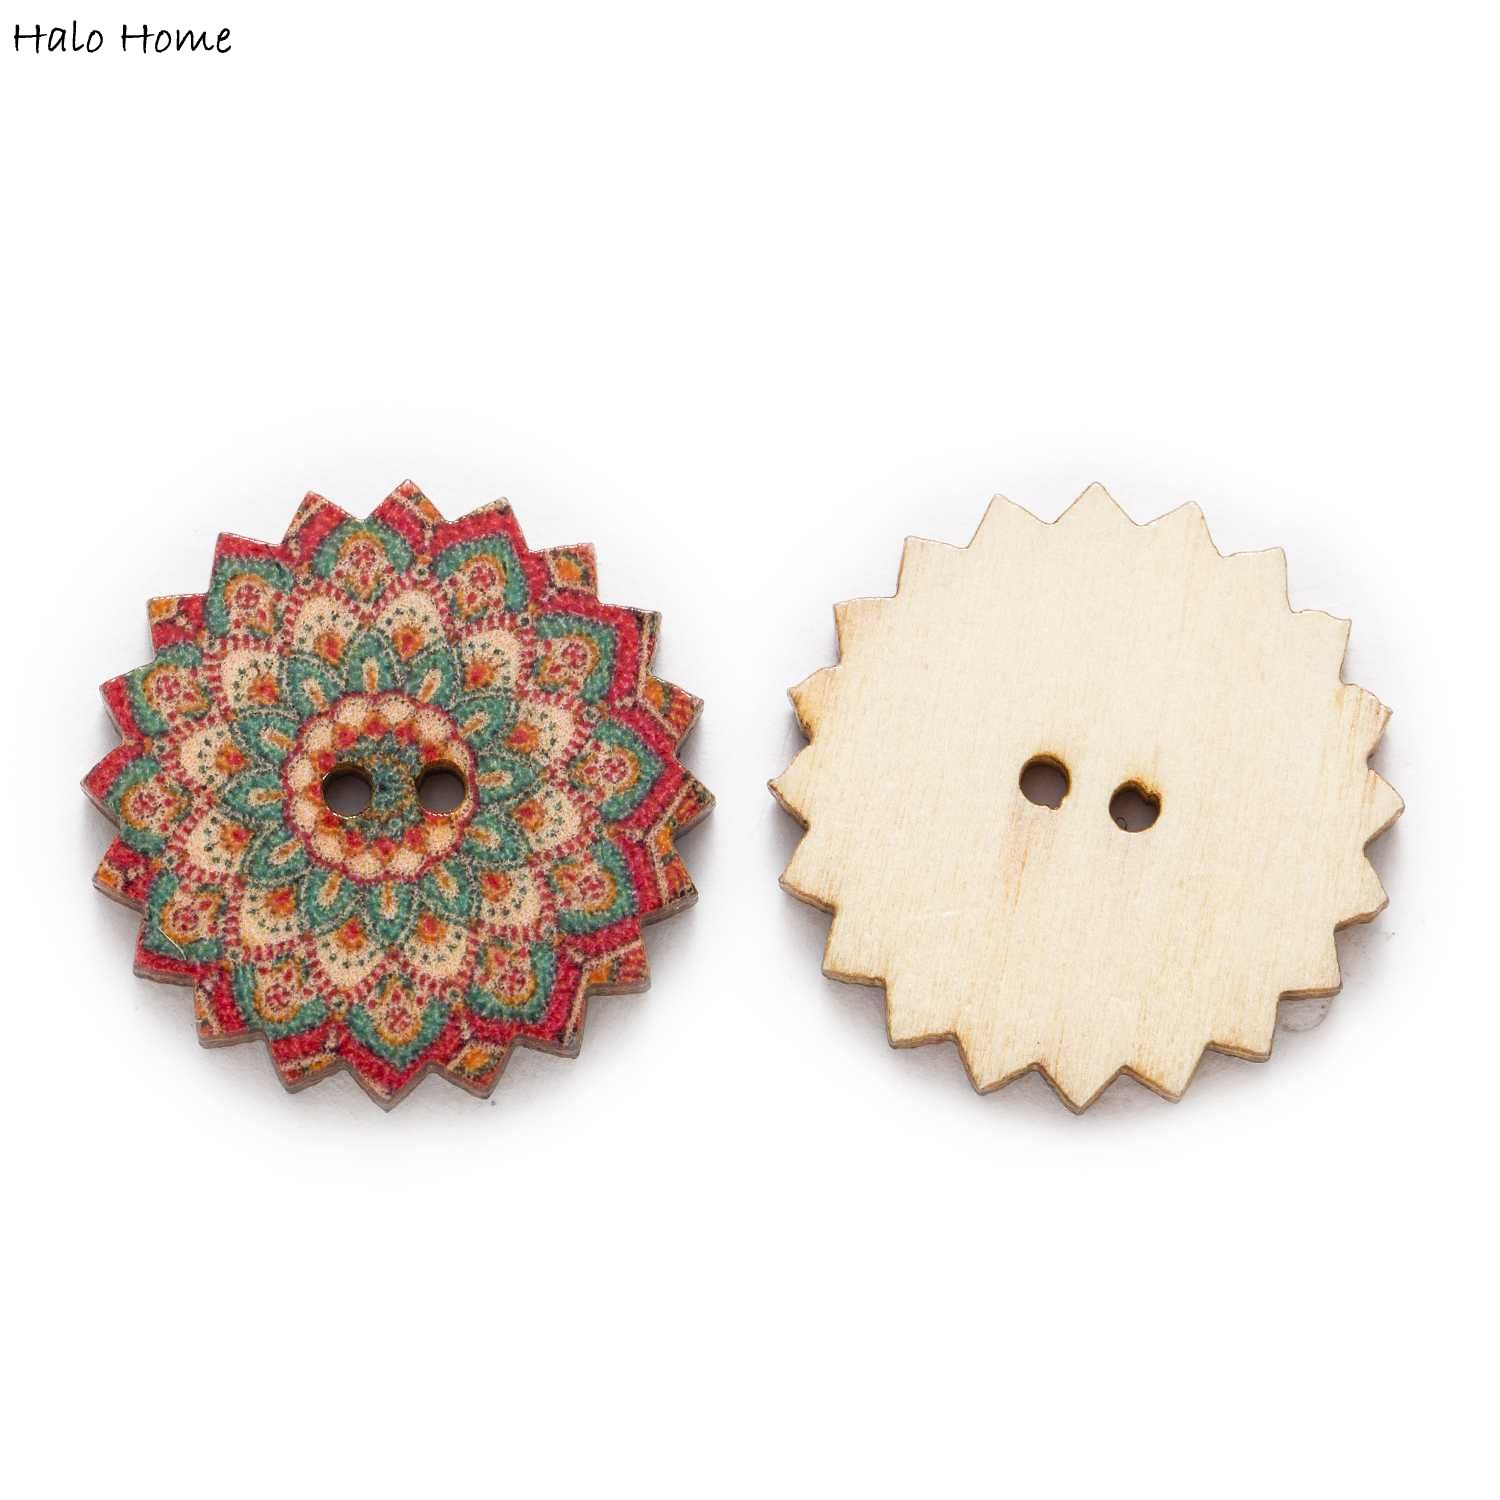 50pcs Painted Gear Wood Buttons for Handwork Sewing Scrapbook Clothing Crafts Accessories Gift Card 20 25mm 50pcs Painted Gear Wood Buttons for Handwork Sewing Scrapbook Clothing Crafts Accessories Gift Card 20-25mm